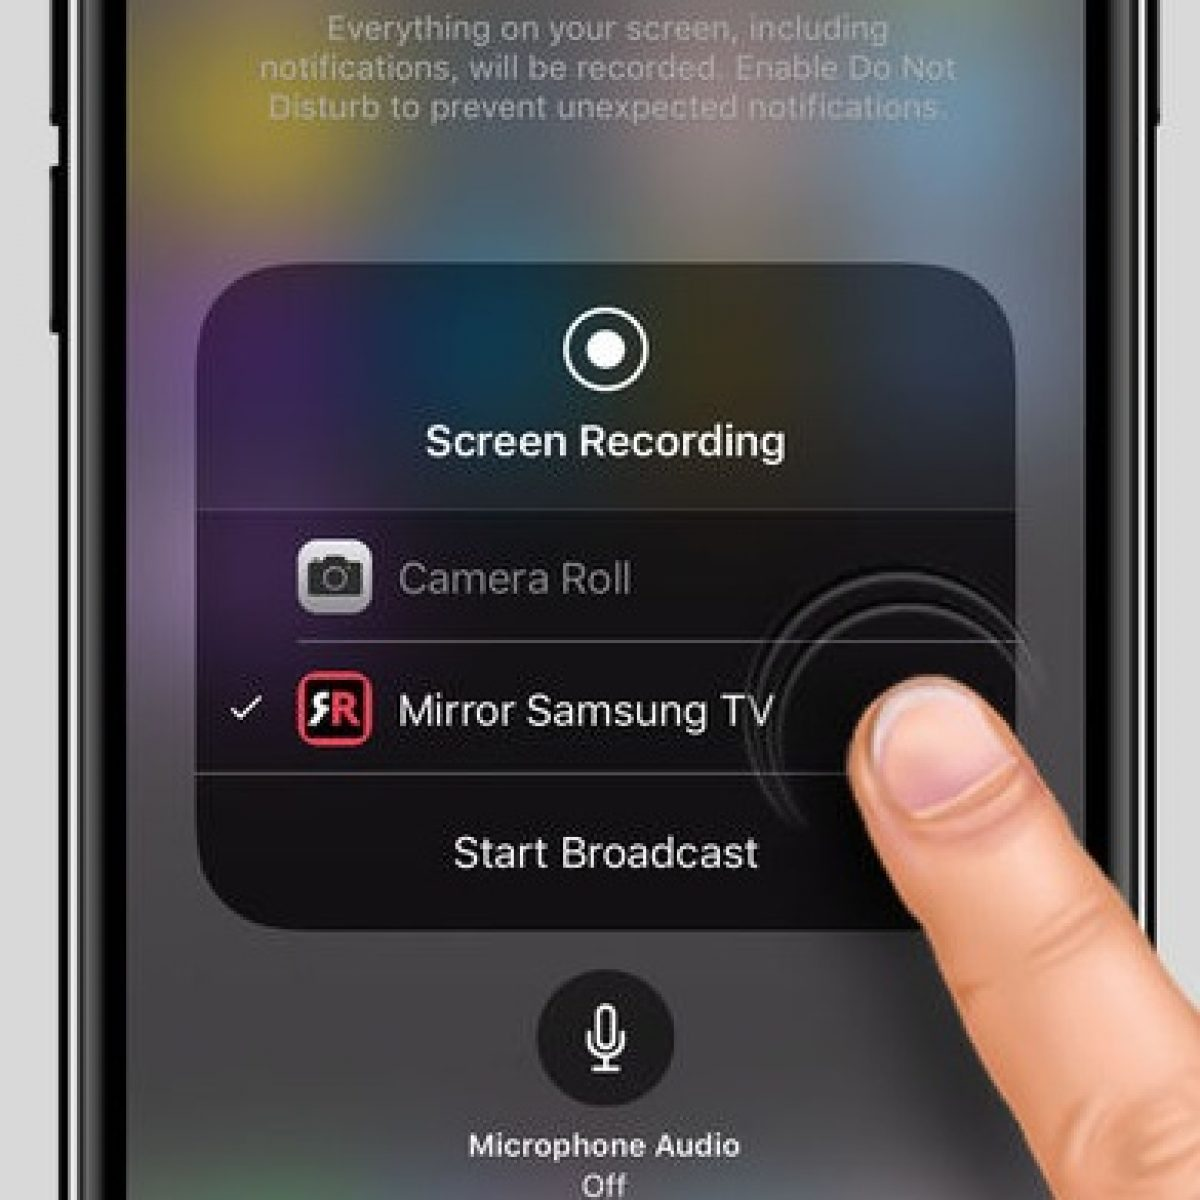 Samsung Tv Without Using An Apple, How To Mirror Iphone Samsung Tv Free Without Apple Id